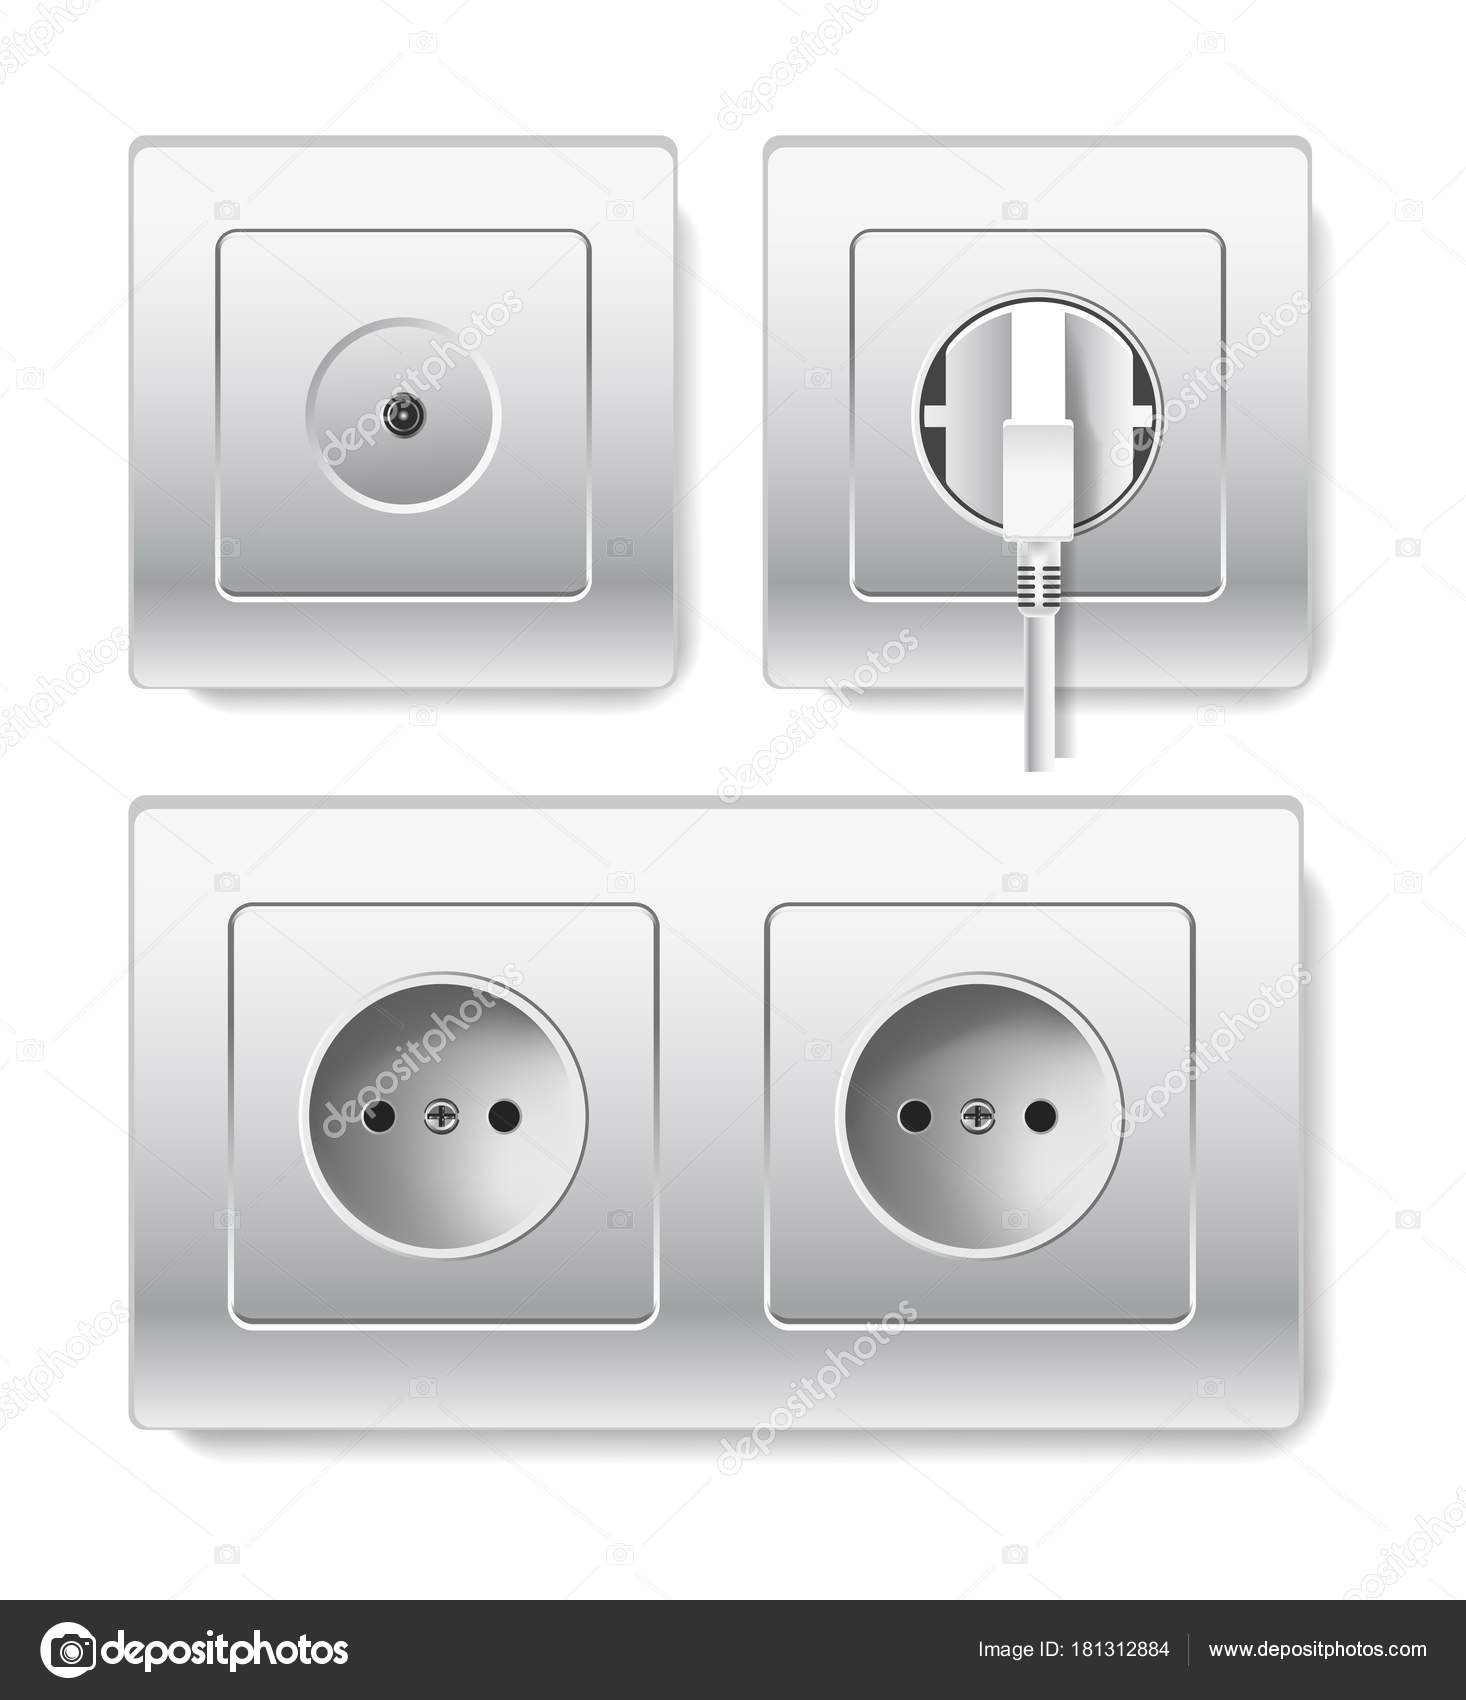 Sockets Types Electric Outlets Plug Vector Isolated Realistic Socket ...